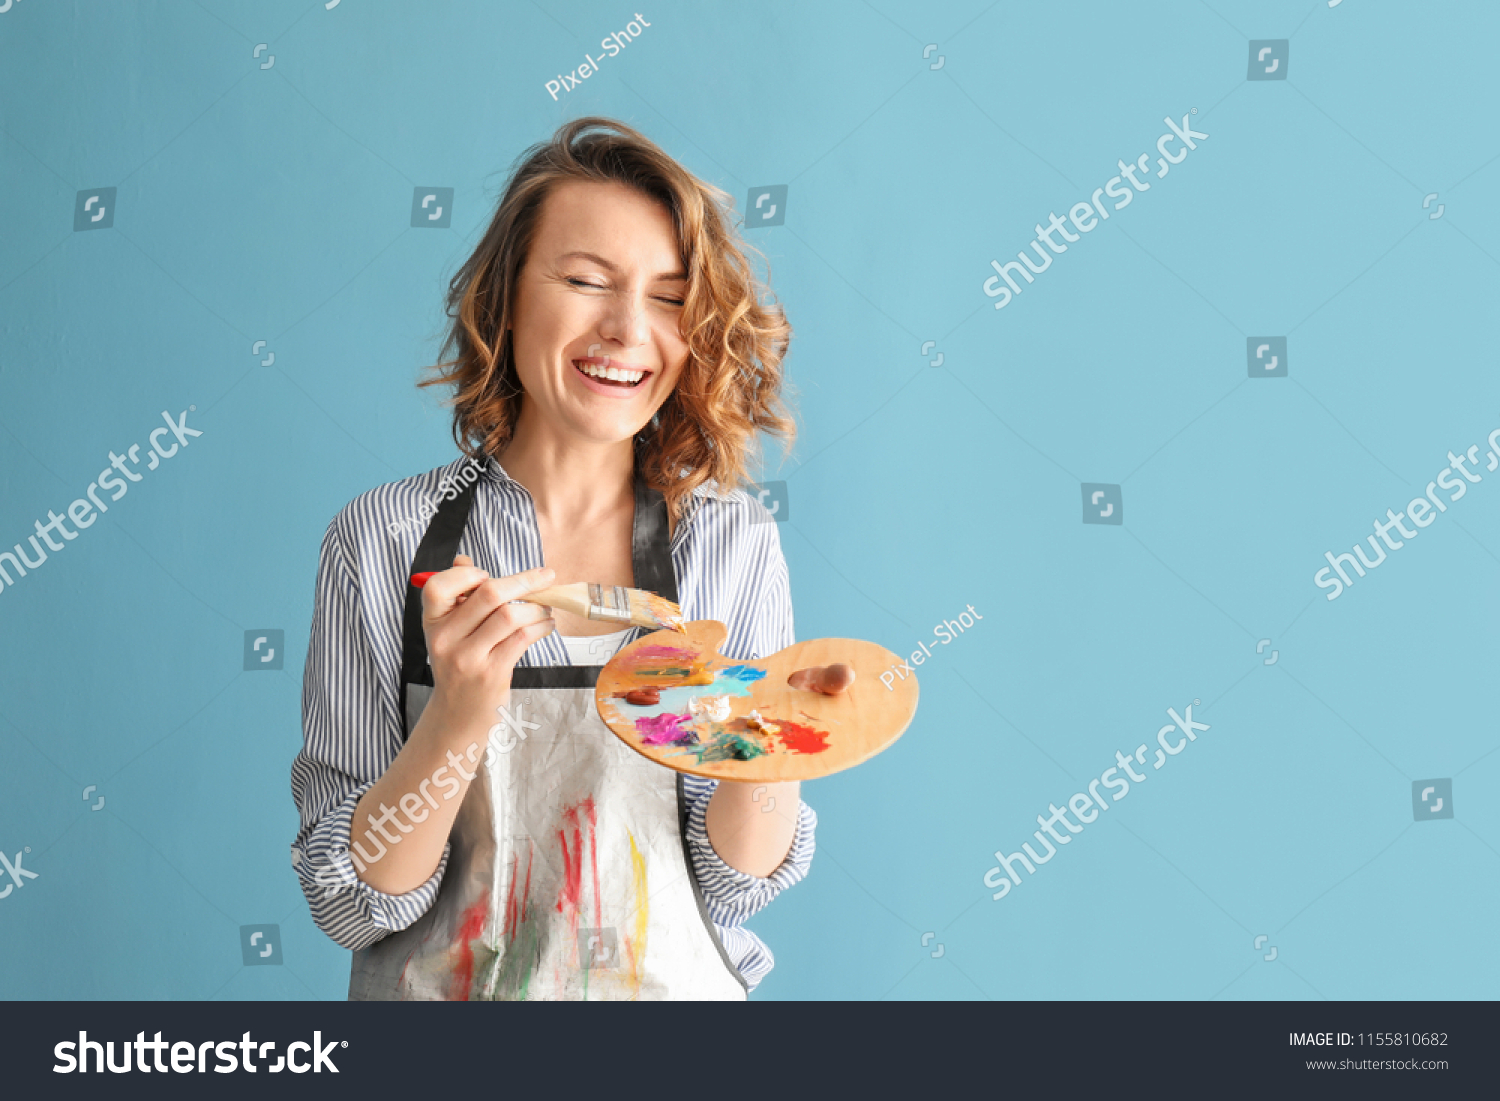 Female artist with brush and paint palette on color background #1155810682